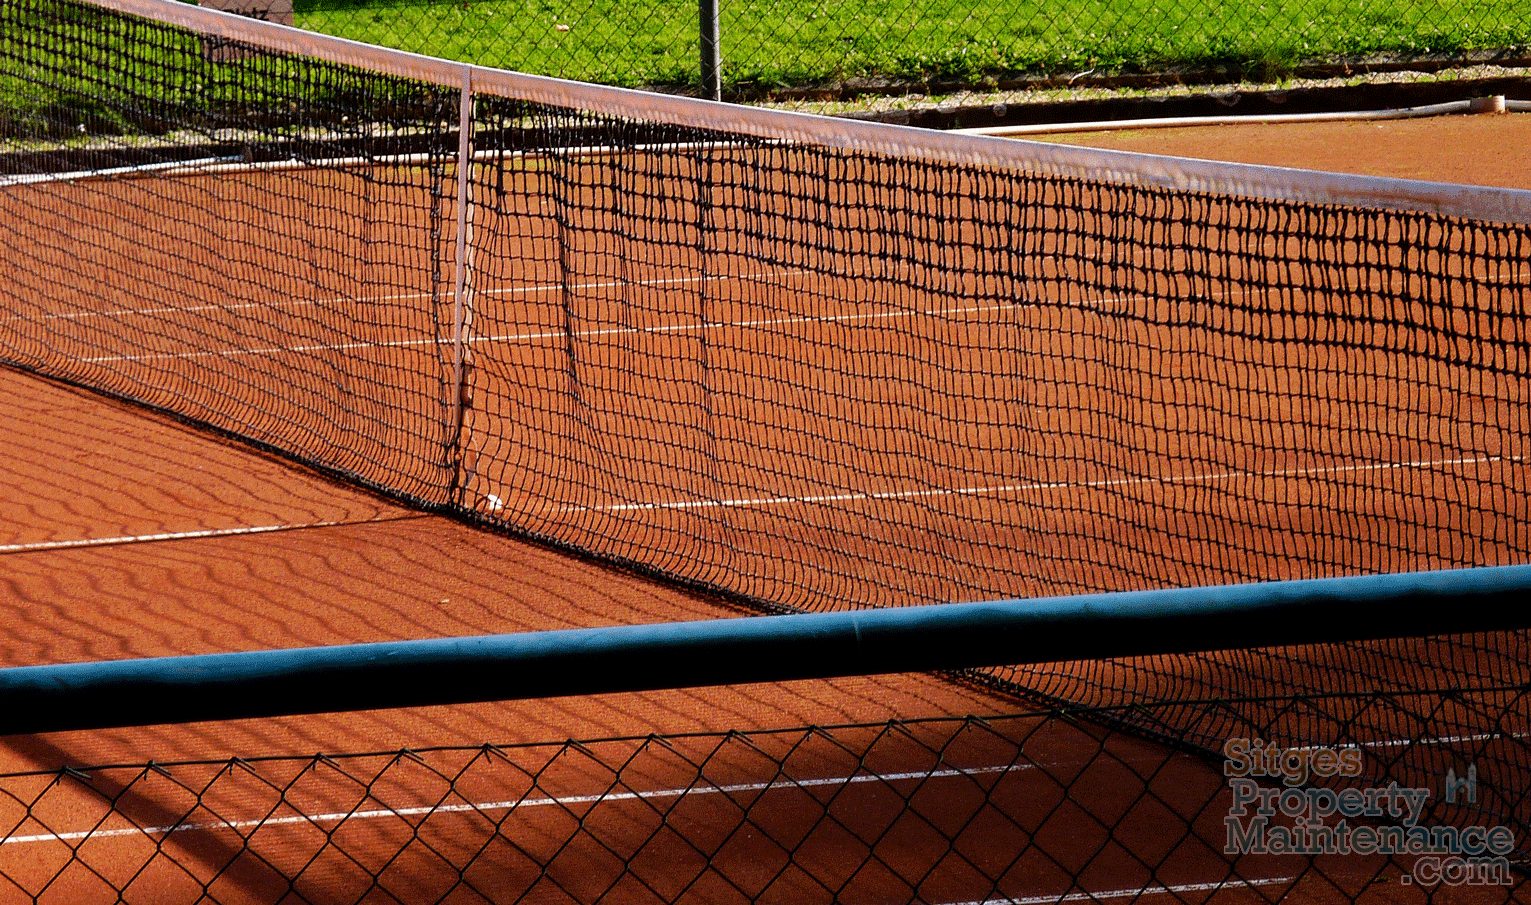 w-sitges-barcelona-tennis-courts